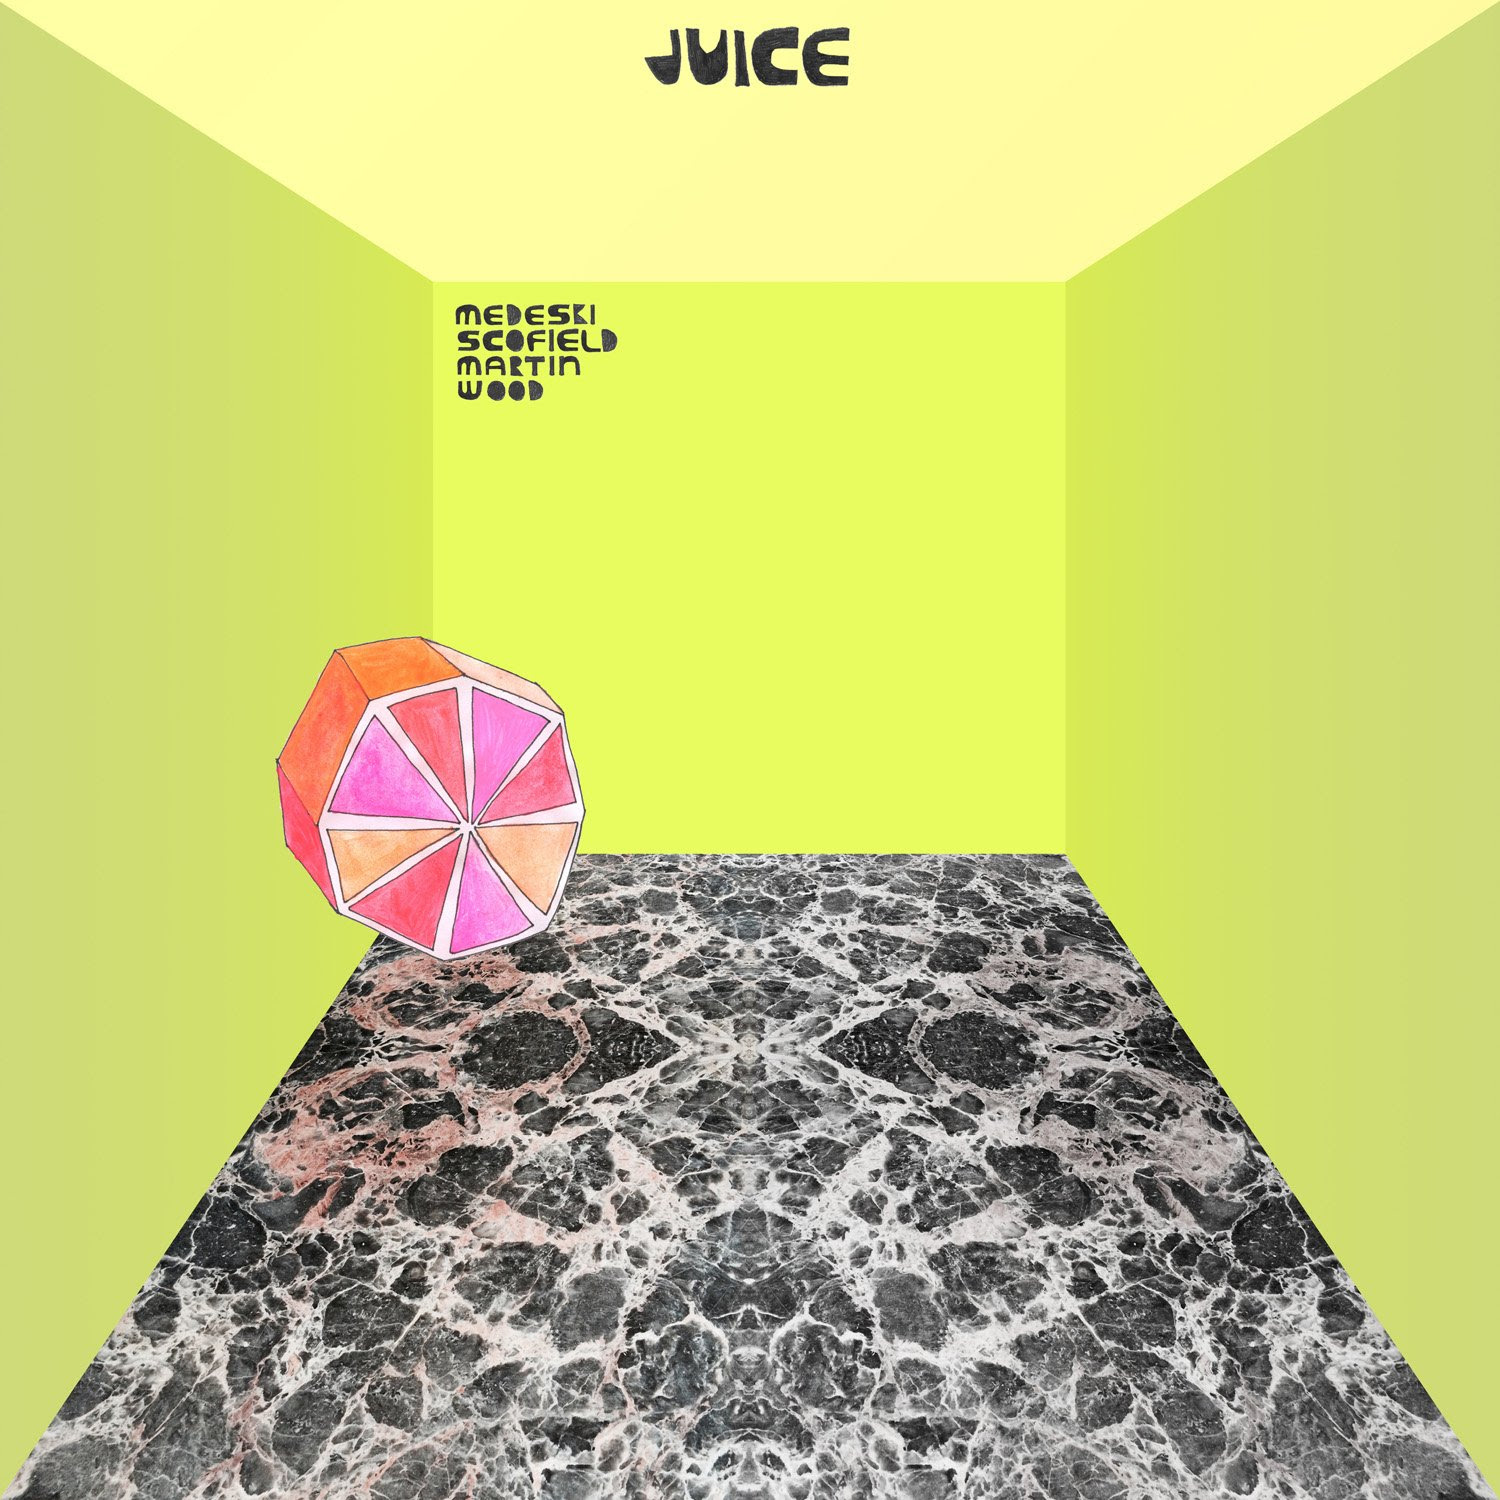 Medeski Scofield Martin & Wood  - Juice cover